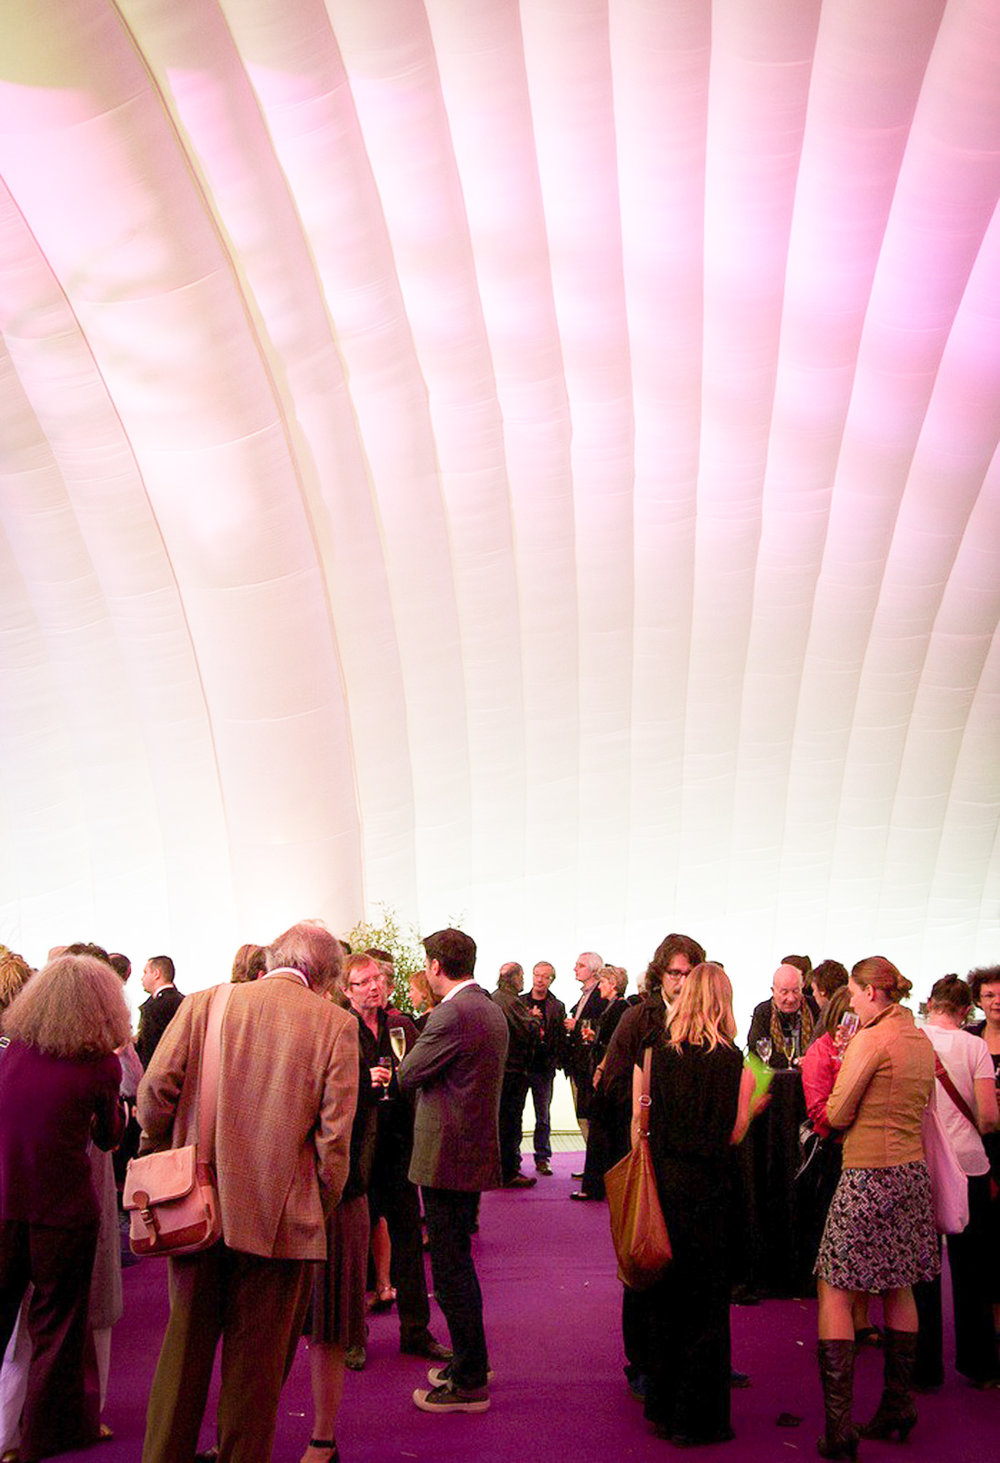 Internal view of the structure during the reception